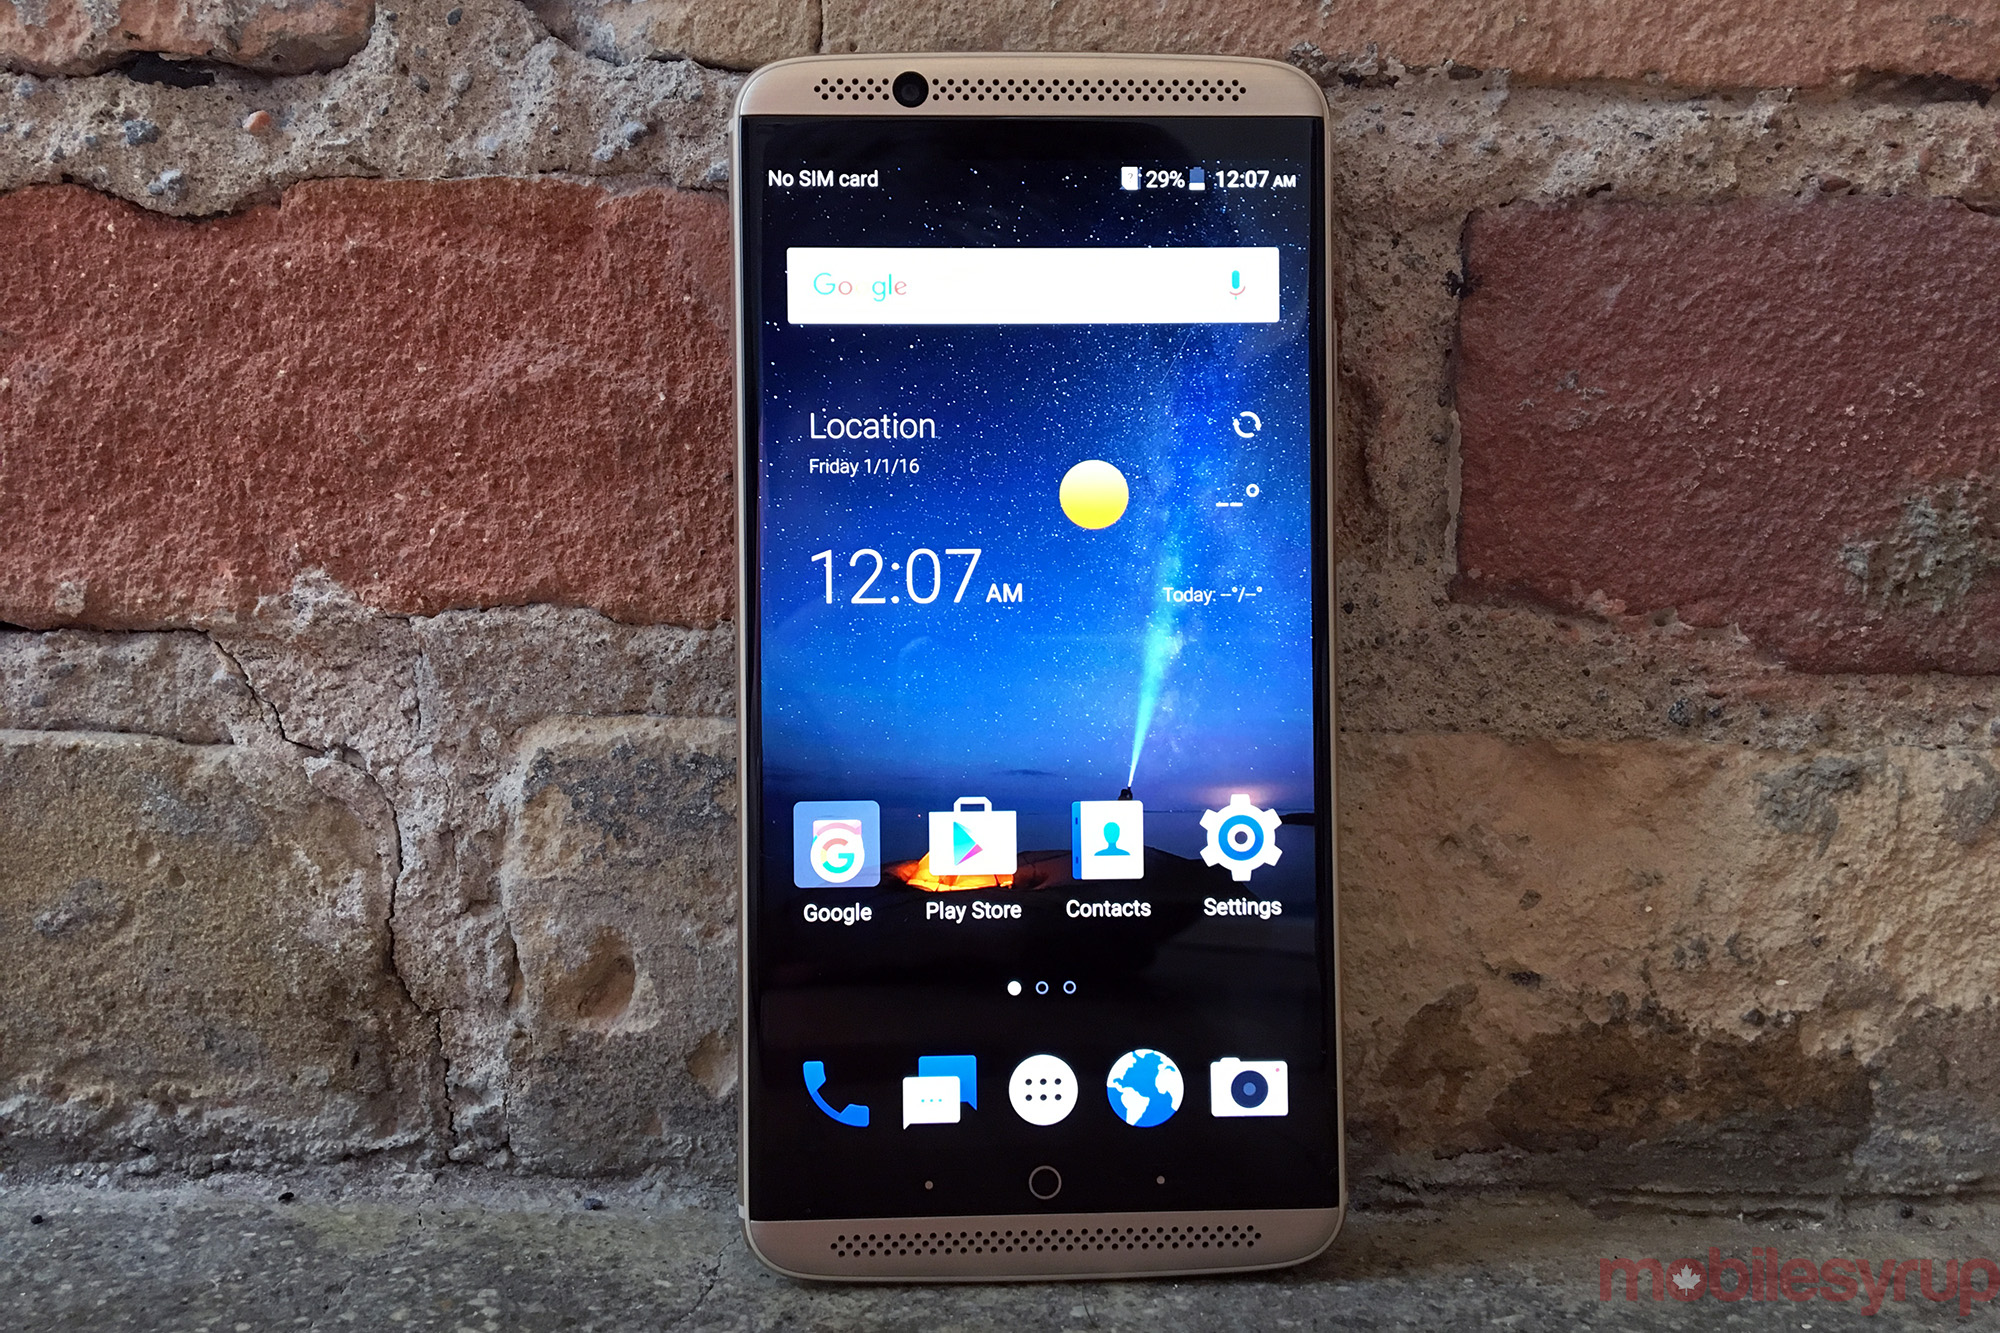 The Axon 7 Purports To Feature Stock Android Marshmallow 601, But It's  Worth Noting That There Are Definite Caveats For One, Users Will Have To  Go Into